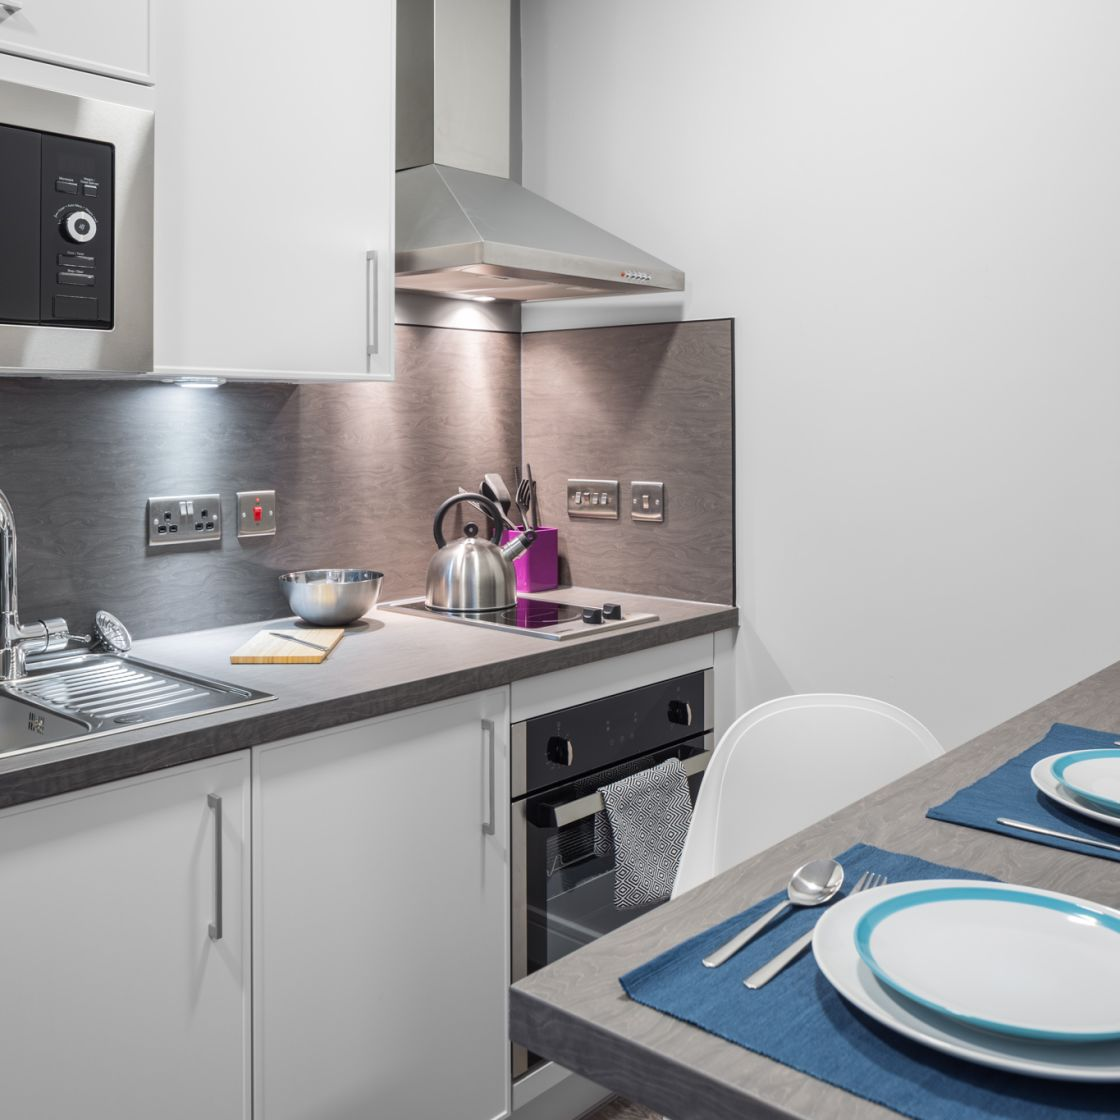 Elegance Student Apartment in Liverpool. fully fitted kitchen and breakfast bar. IconInc, The Ascent